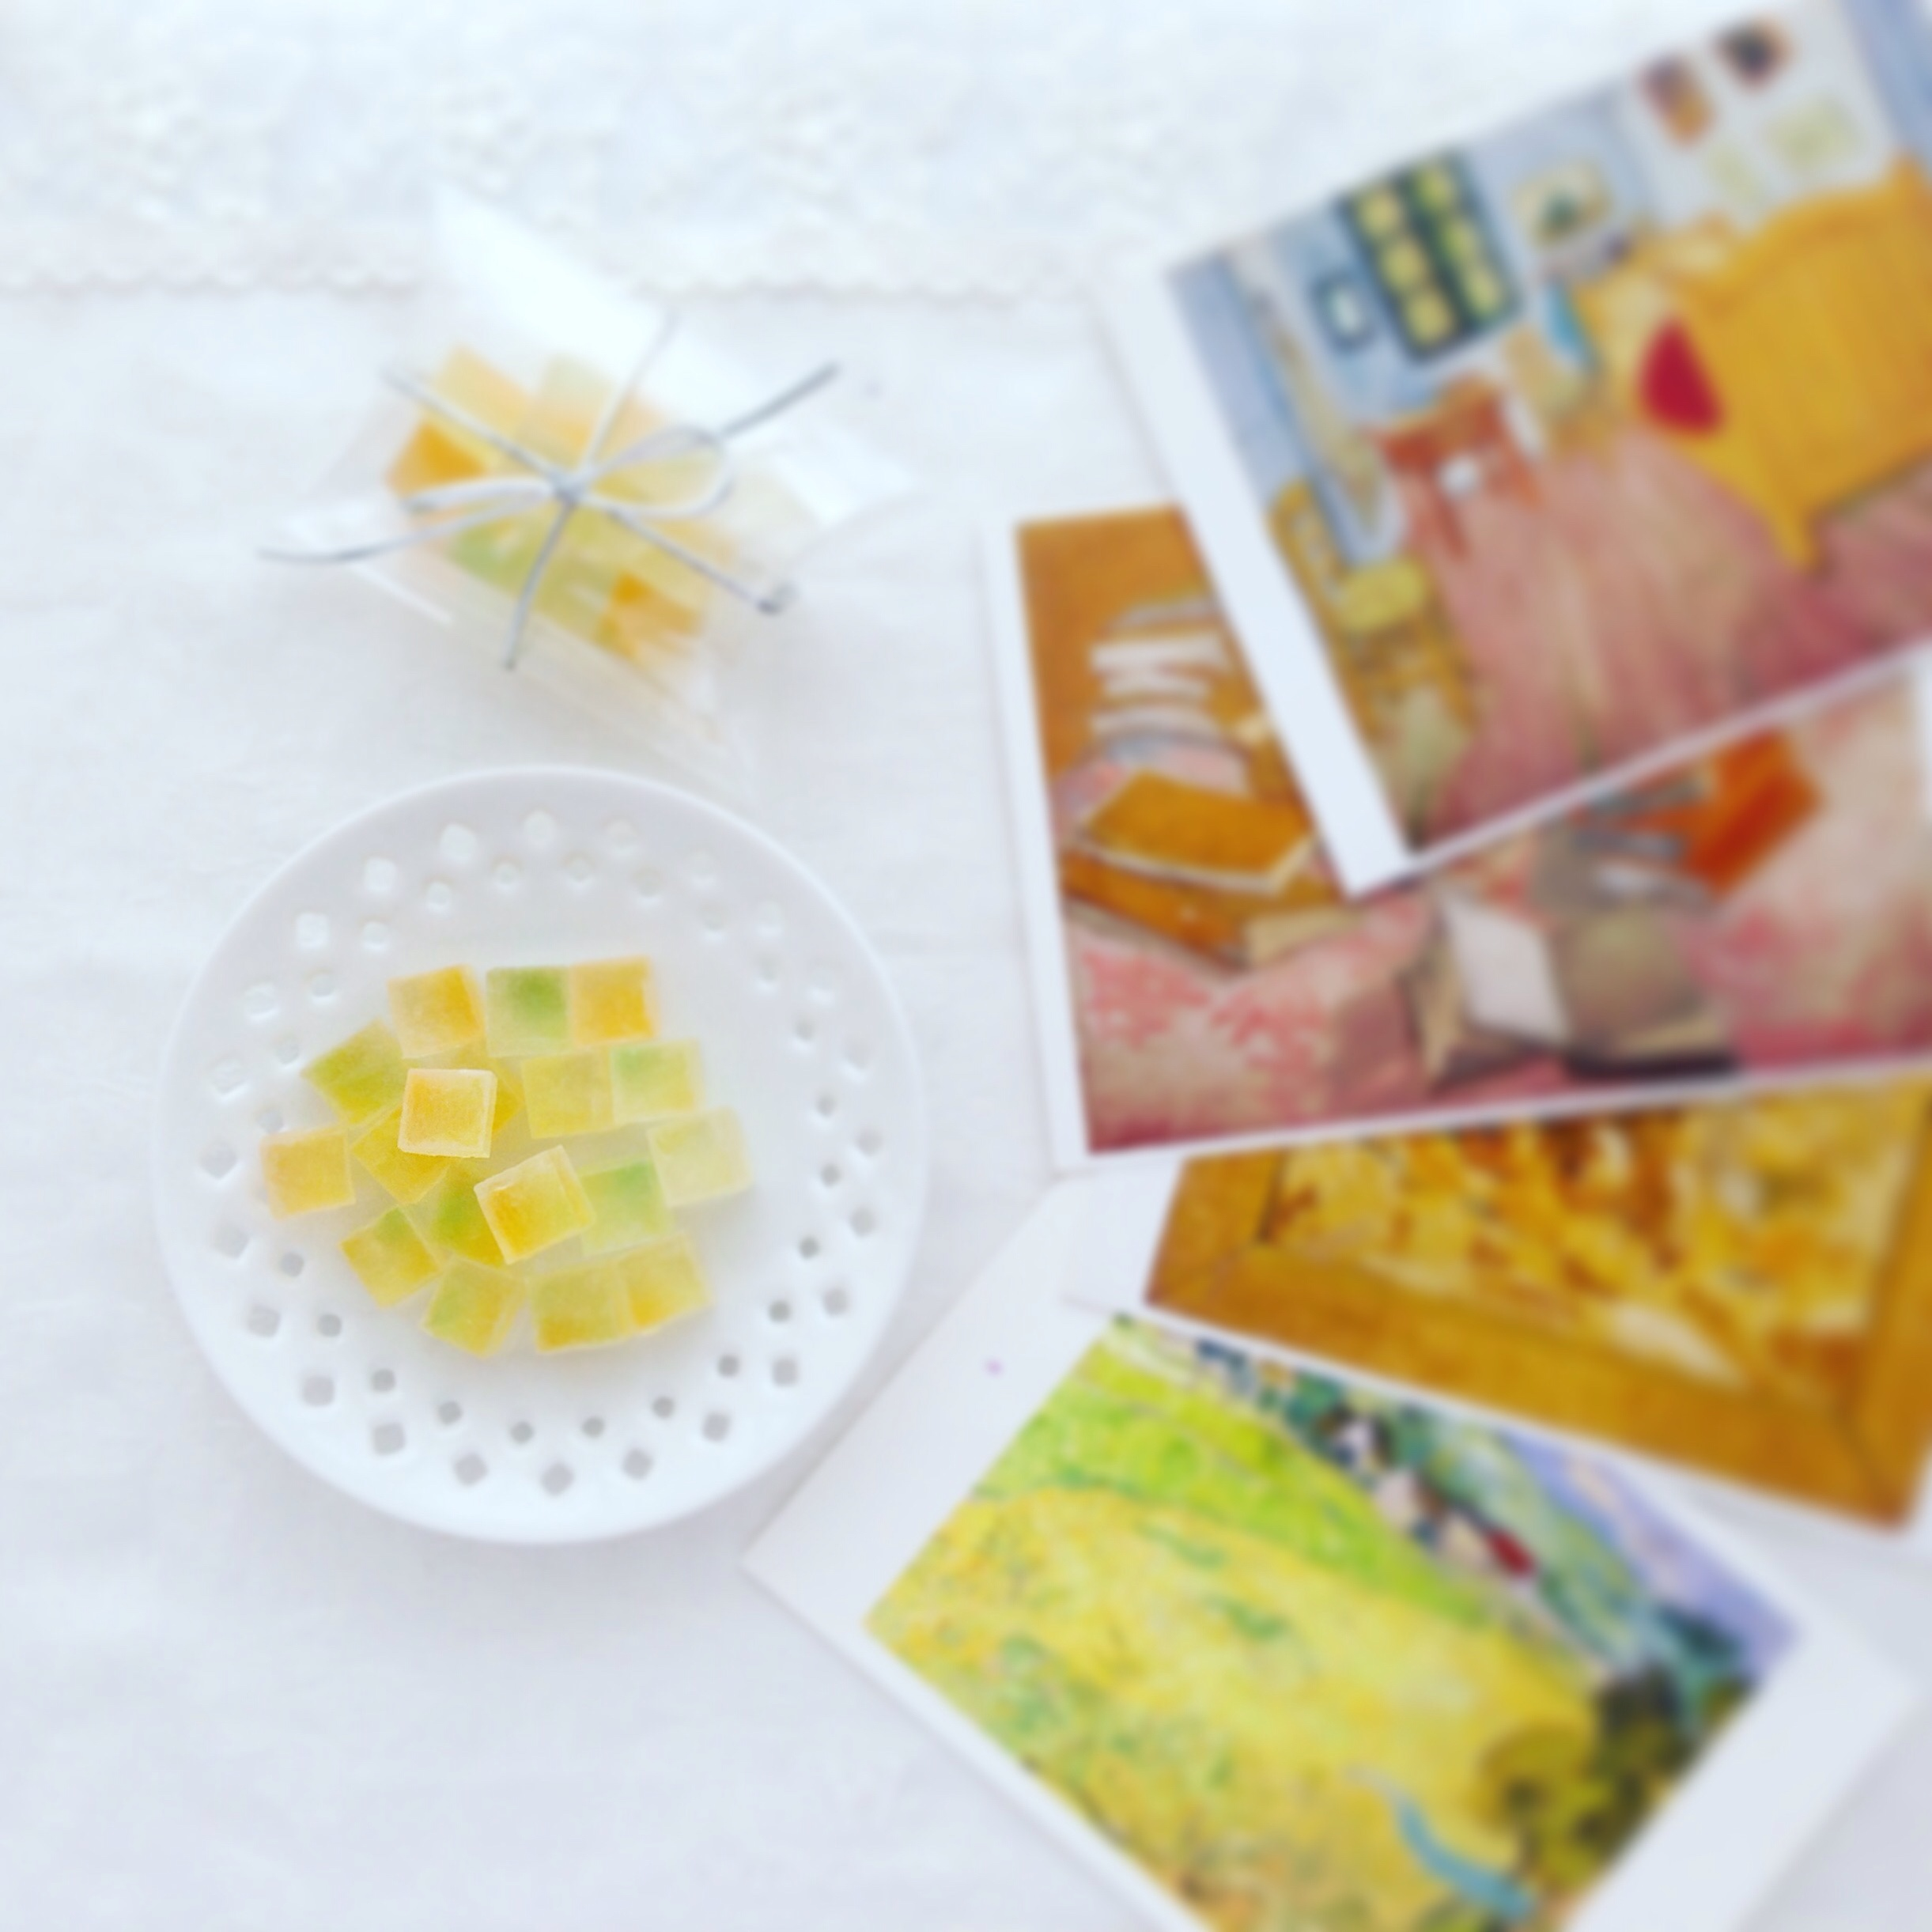 Sunflowers jelly - candy / Vincent van Gogh / Edible Art